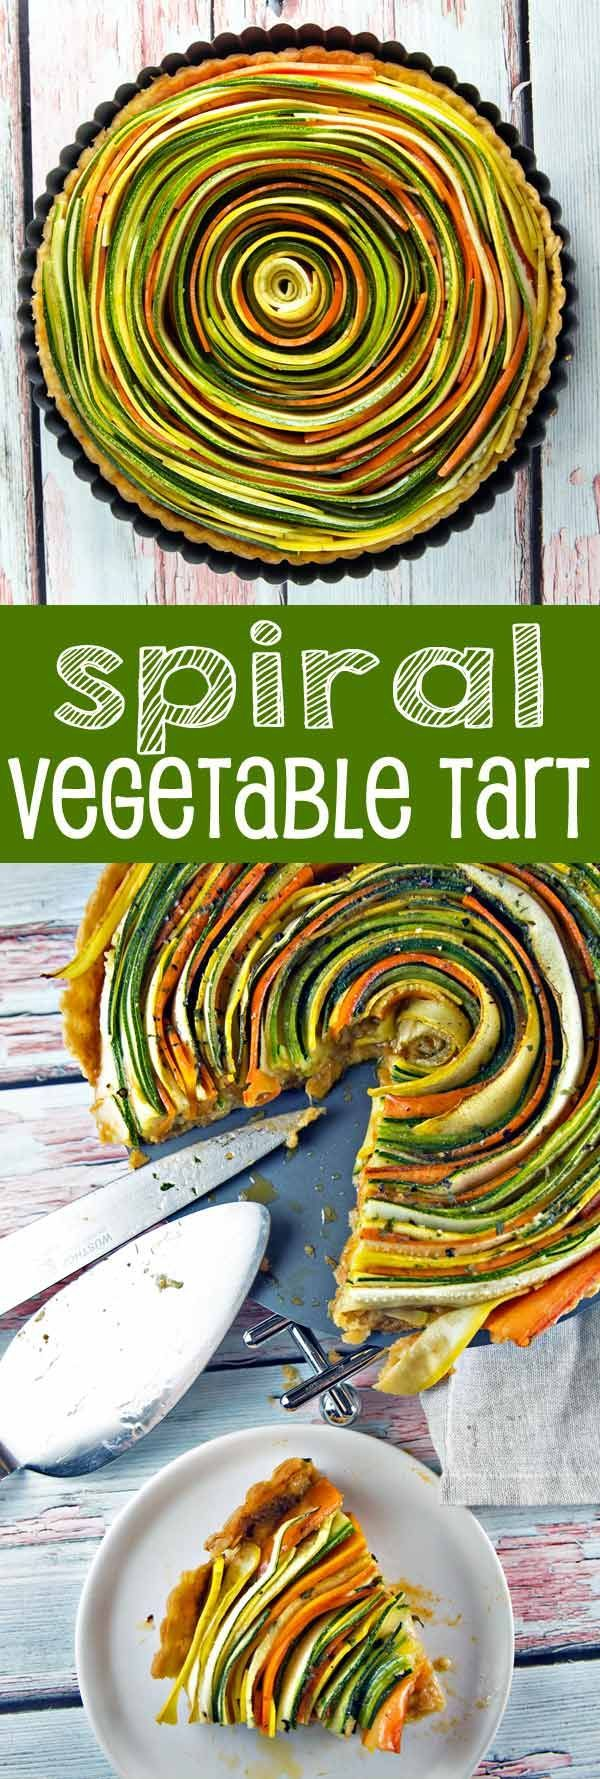 Thinly sliced summer vegetables are the visual star of this spiral vegetable tart. With a layer of homemade sundried tomato pesto and a flaky pie crust, this tart is as delicious as it is beautiful. Bunsen Burner Bakery